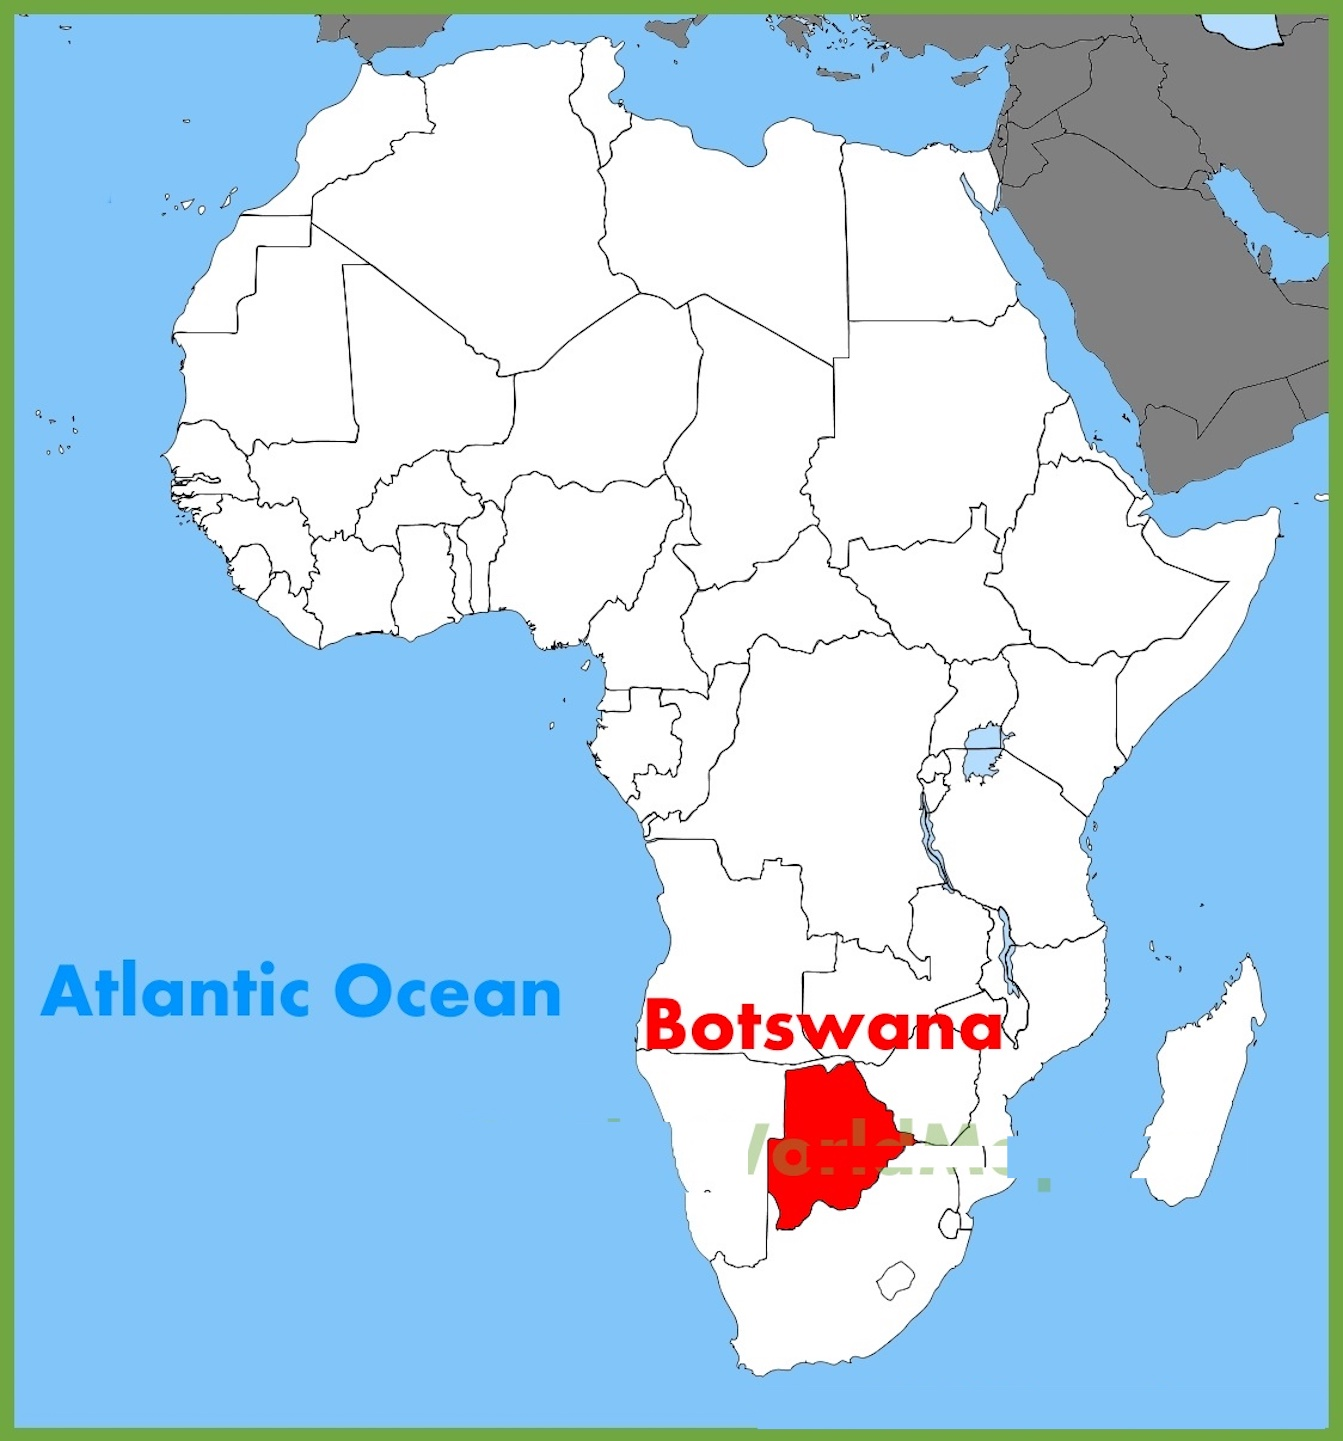 botswana on a map Botswana Map And Other Free Printable International Maps And Flags botswana on a map